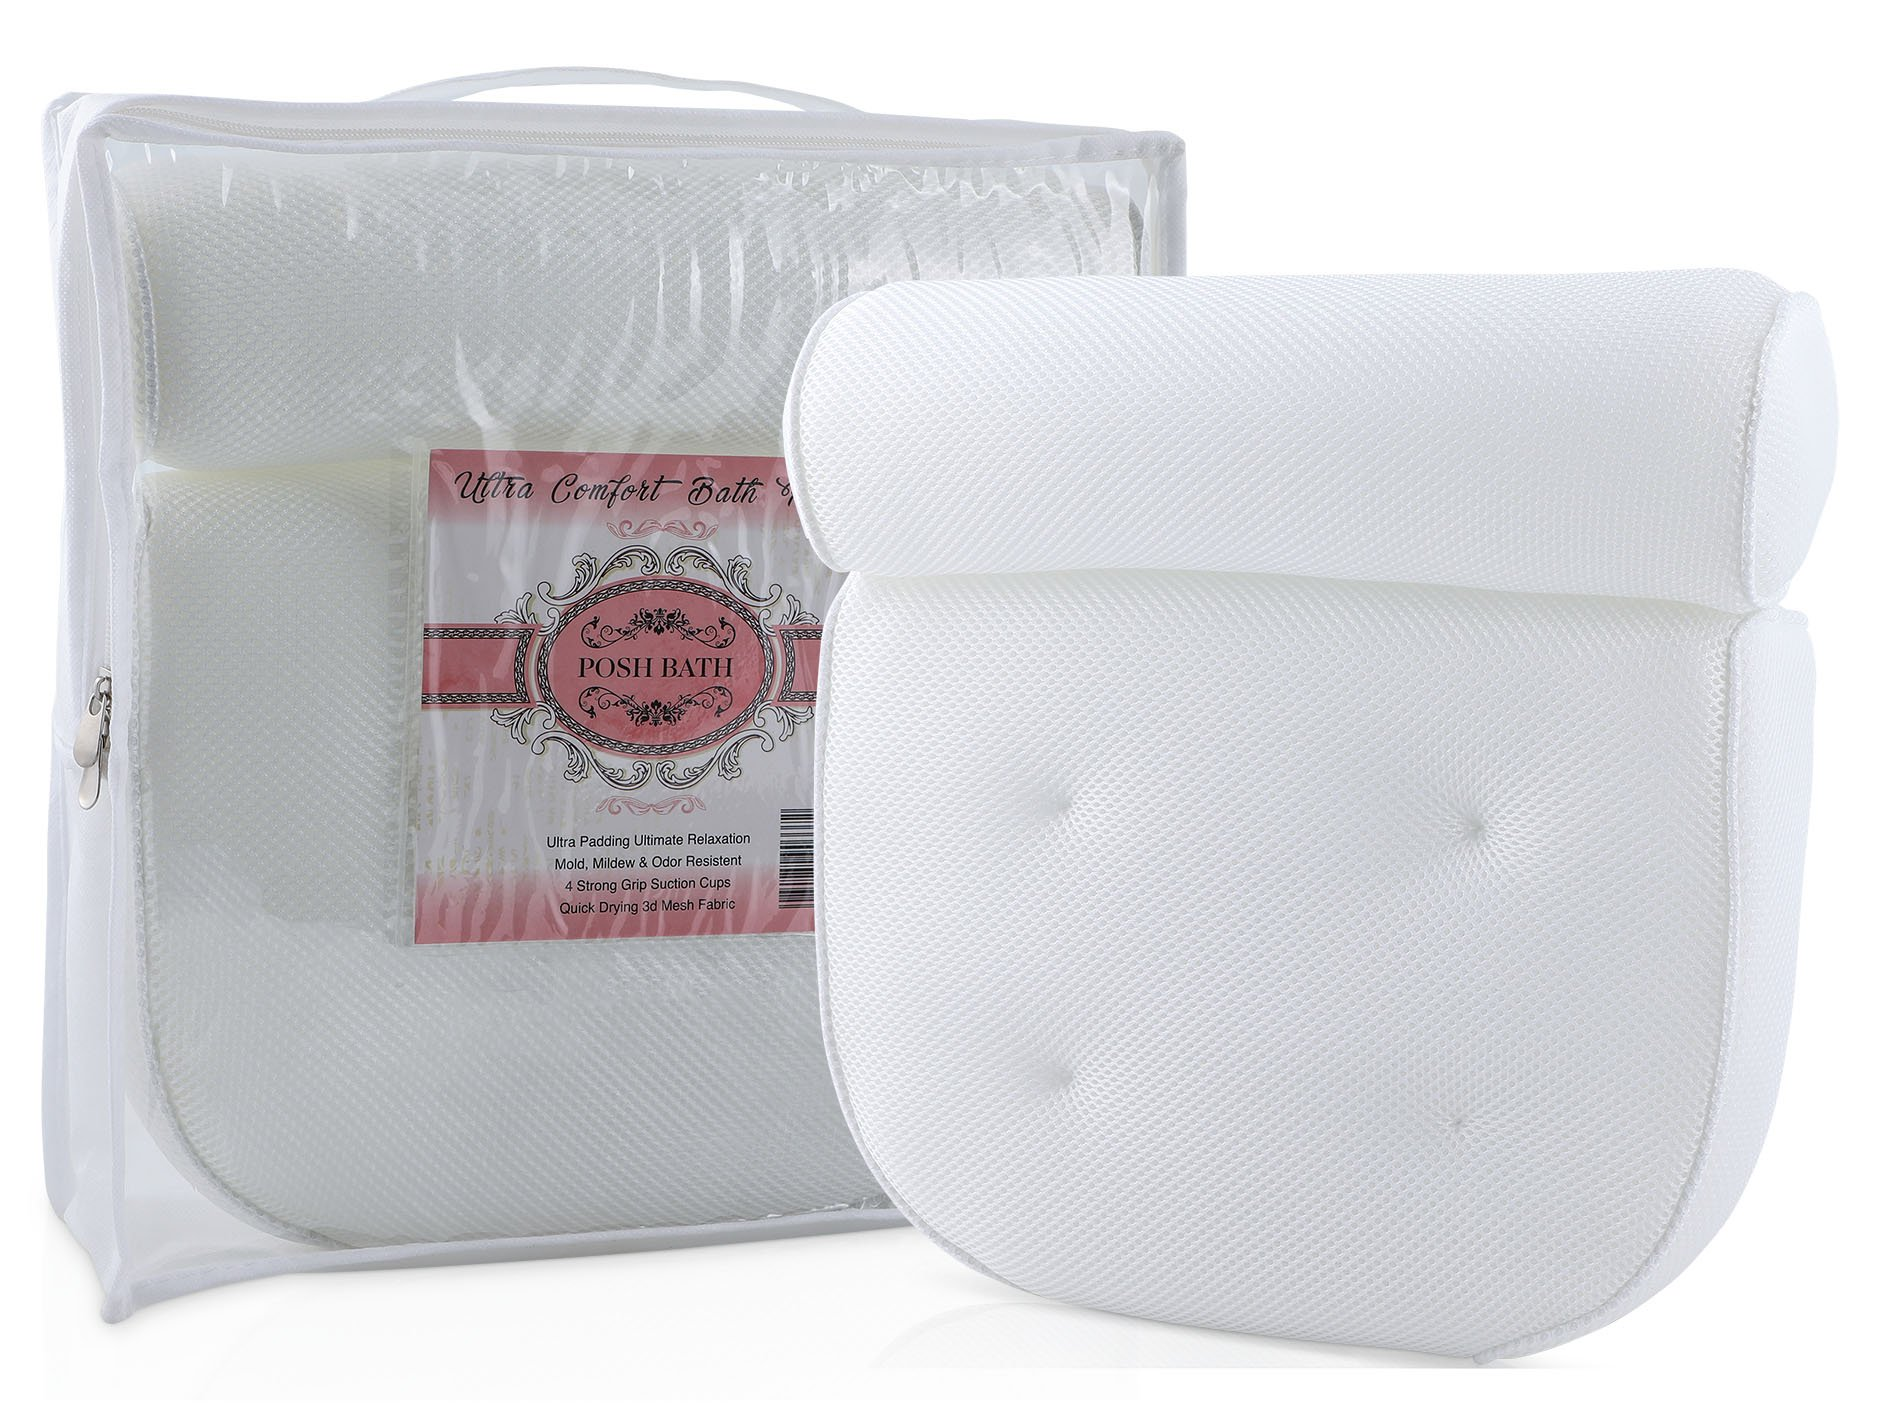 White Bath Pillows For Tub | Luxury Bathtub Pillow | Comfortable Pillow with Suction Cups for Bath, Jacuzzi, Hot Tub, n Spa | Pillows for Neck n Shoulder Support | Bubble Bath Foam Cushion | Washable